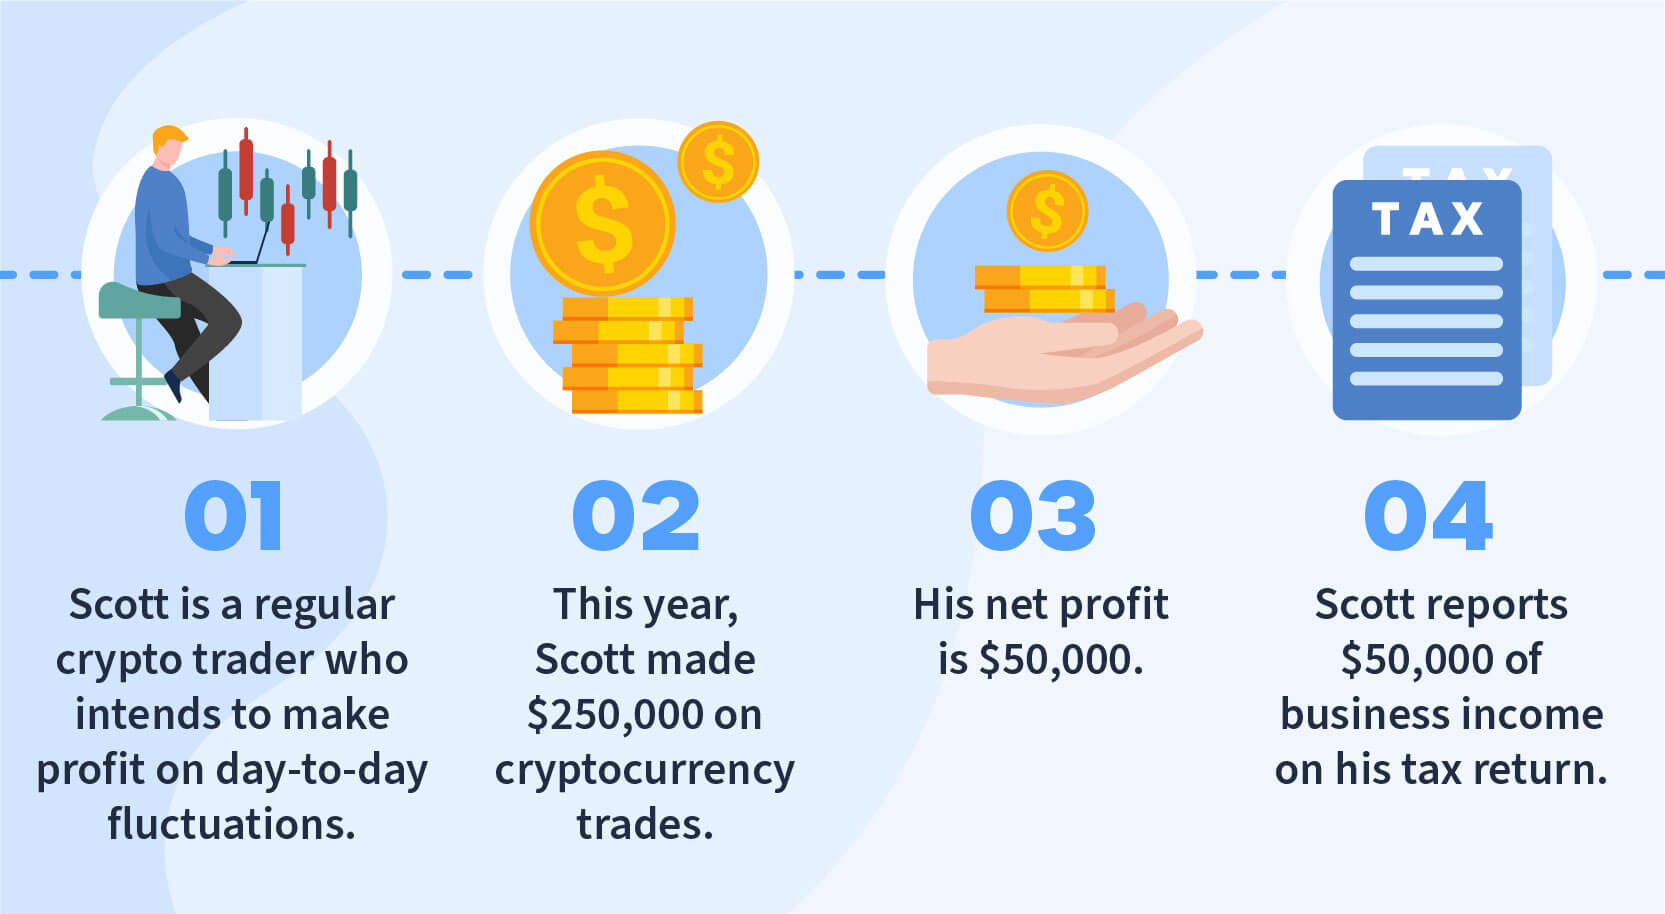 Crypto business income taxes